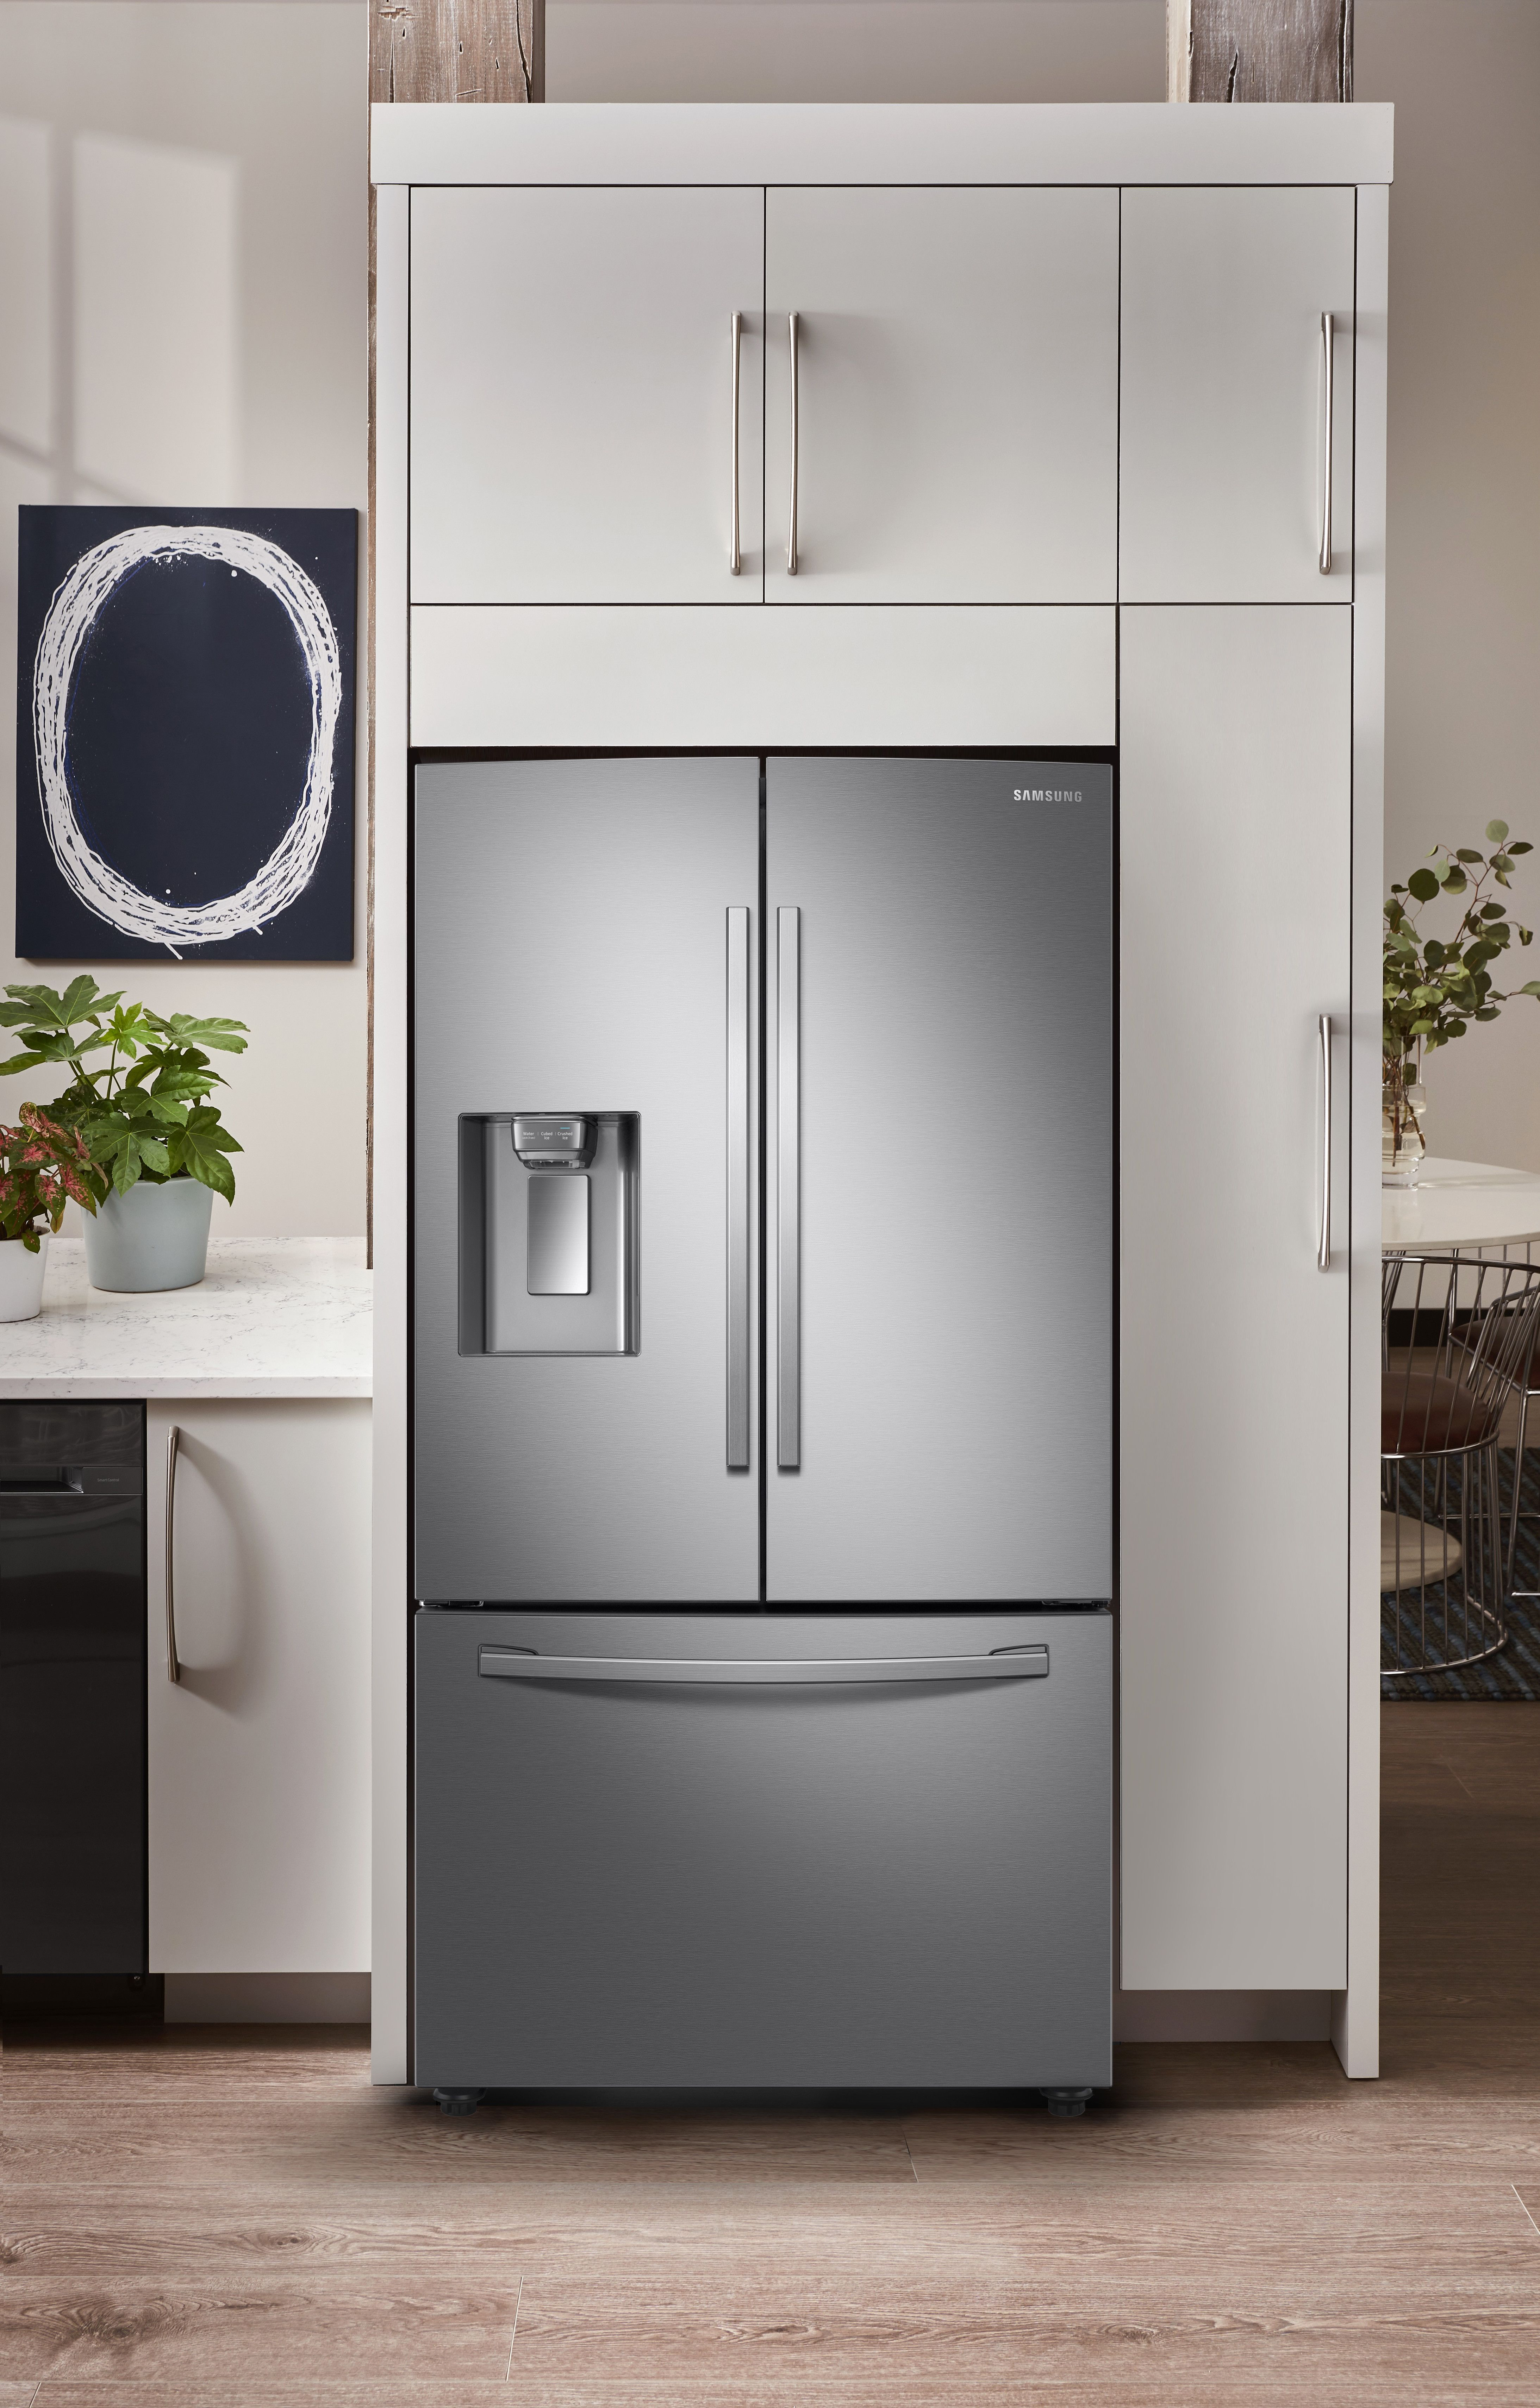 Samsung Rf28r6201sr 36 Inch 3 Door French Door Smart Refrigerator With Wi Fi Twin Cooling Plus Cool Select Pantry Integrated Ice And Water Dispenser Power F Counter Depth Refrigerator French Door Refrigerator Interior